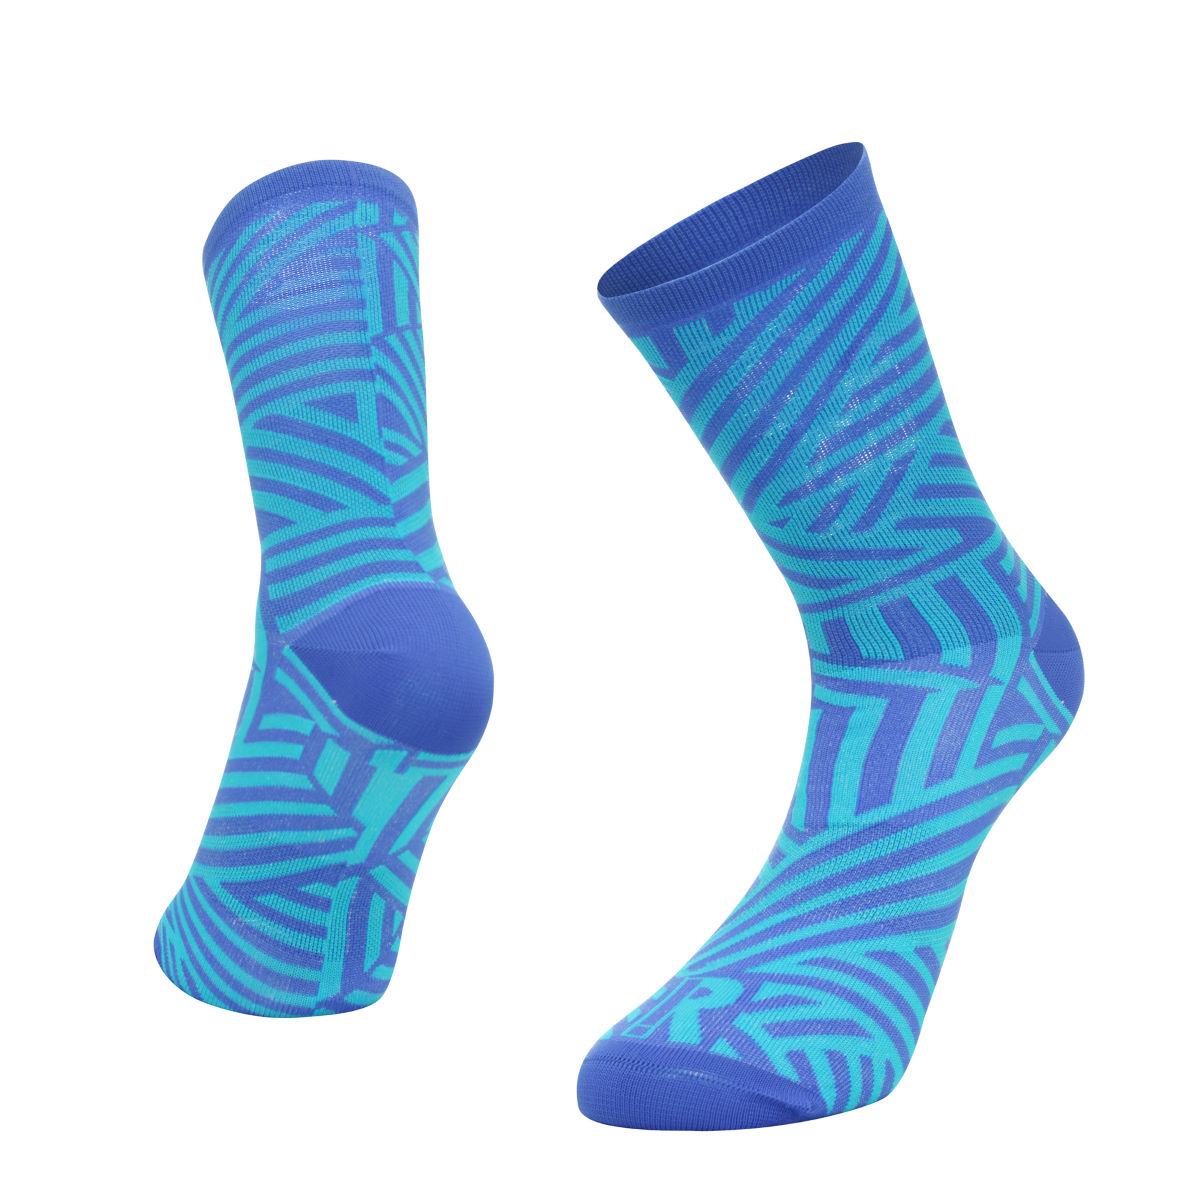 Ratio Dash 16 cm Sock (Blue/Blue) - Calcetines